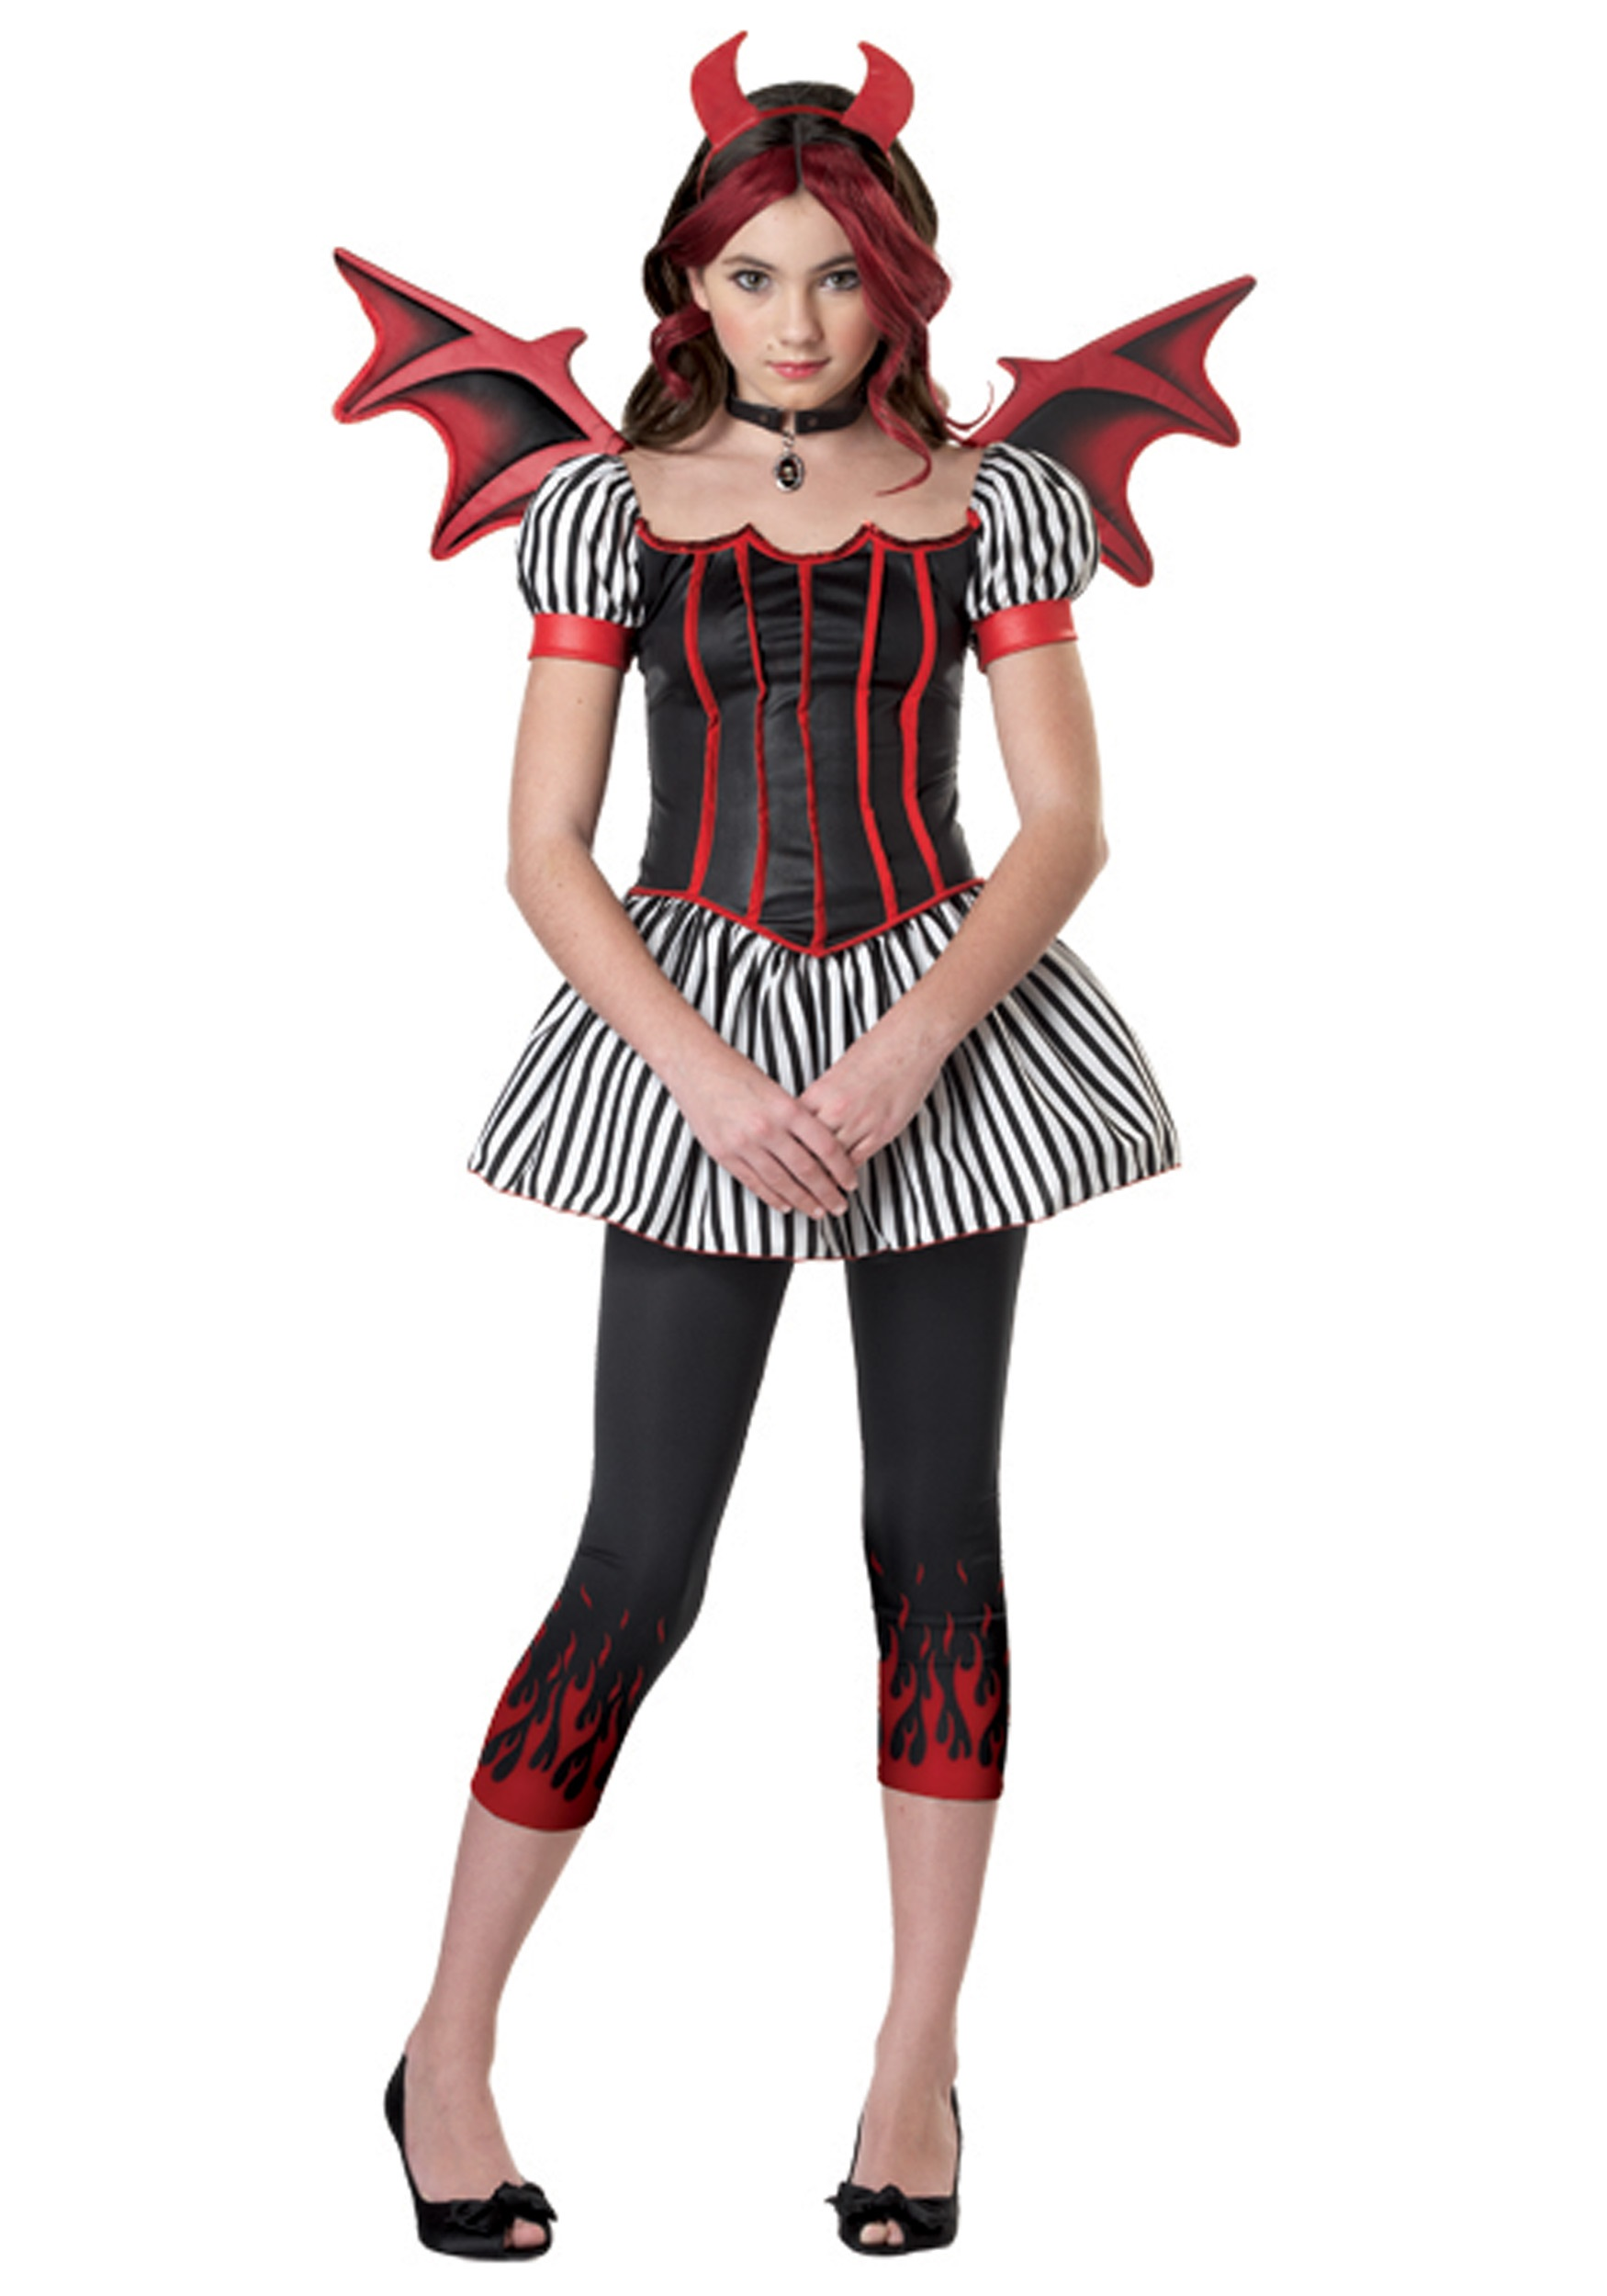 Tween Strangelings Devil Costume  sc 1 st  Halloween Costumes : costumes for tweens  - Germanpascual.Com